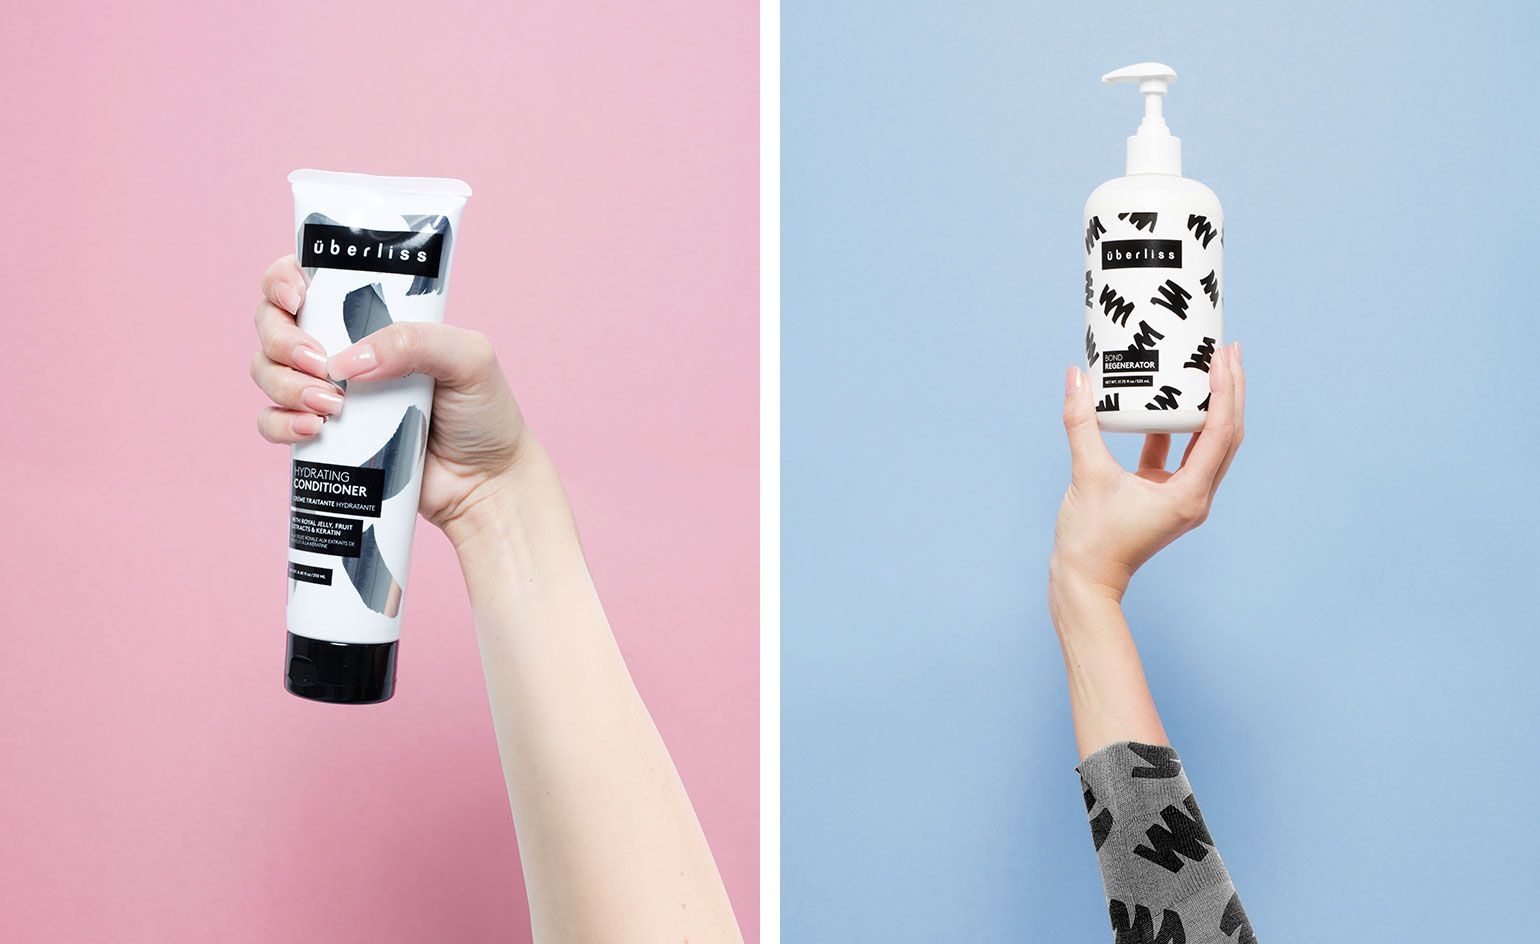 Mane Attraction Haircare Brand Uberliss Unveils A Playful New Look Newlook